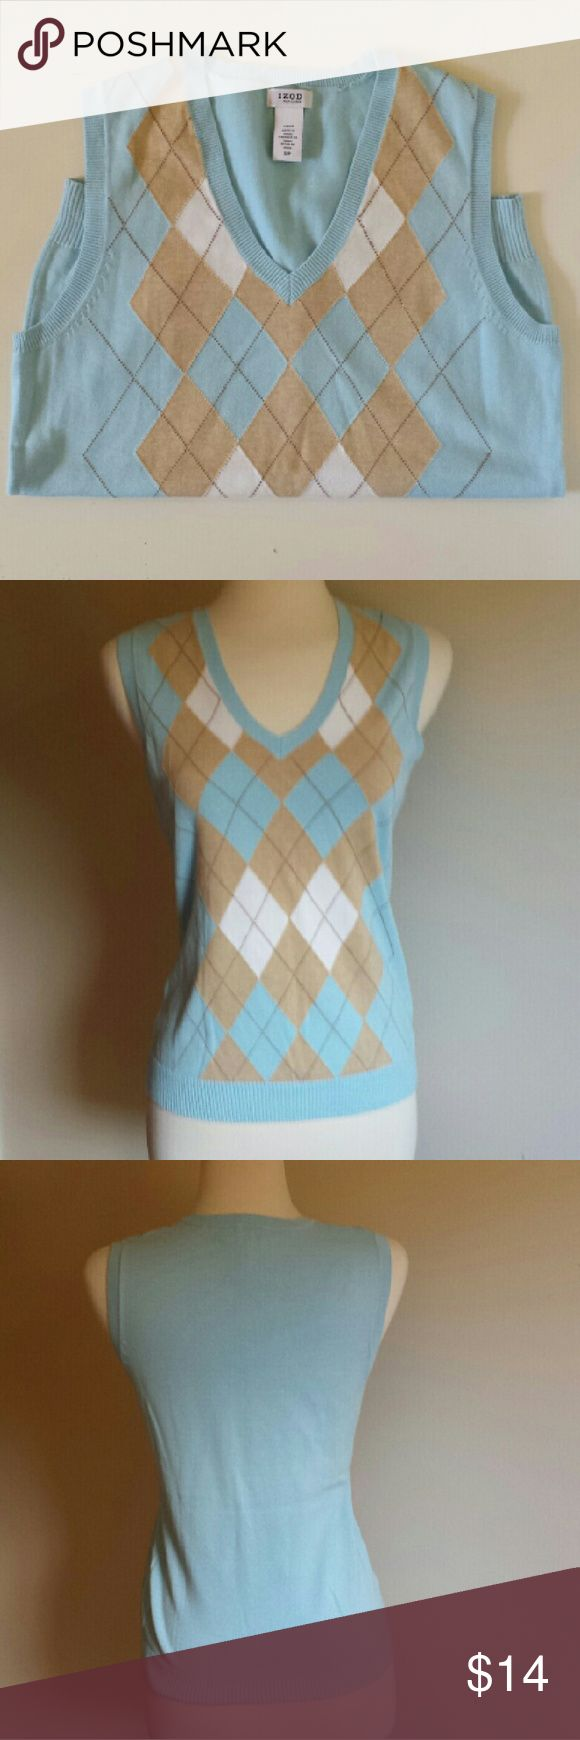 Women's IZOD Golf Baby Blue Sweater Vest Tank Cute and light baby blue argyle sweater vest is great as a sophisticated layer or fun and breezy as a tank.  Complimentary tan and white diamond argyle weave in a very soft cotton blend. No flaws, absolutely life new! Izod Sweaters V-Necks